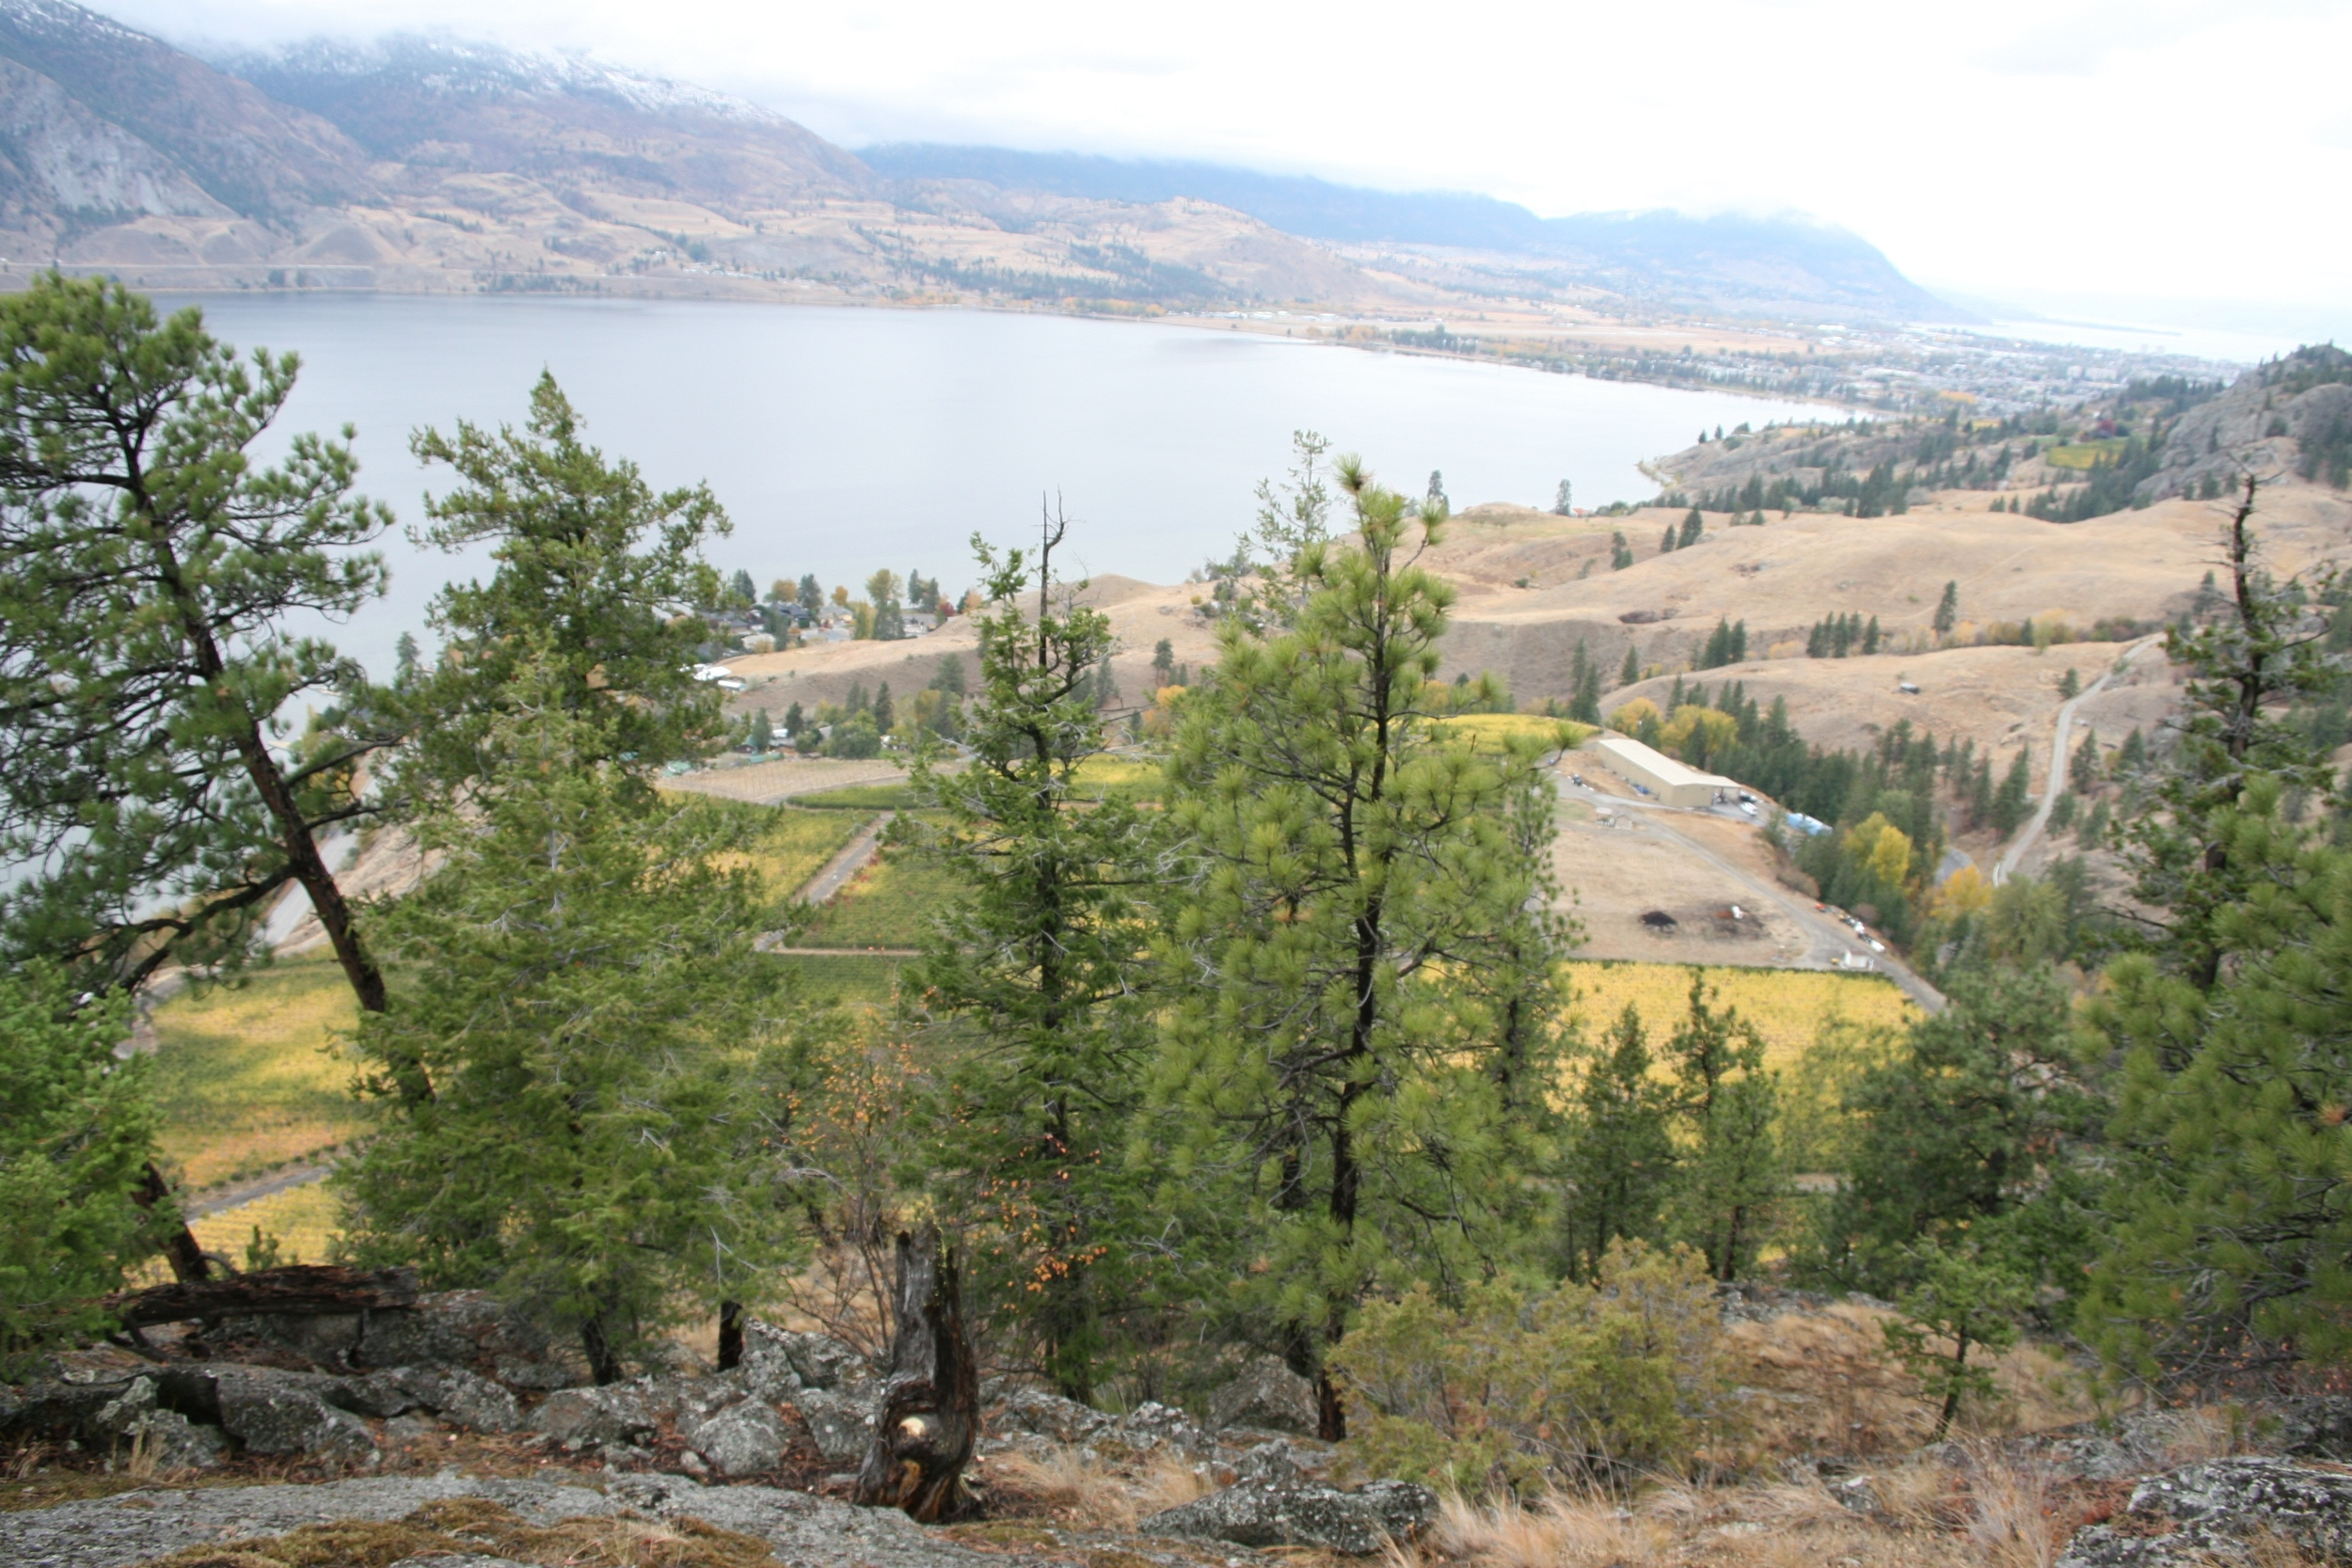 The view down over the vineyard from atop the bluffs. You can see Penticton and Lake Okanagan in the distance to the north.